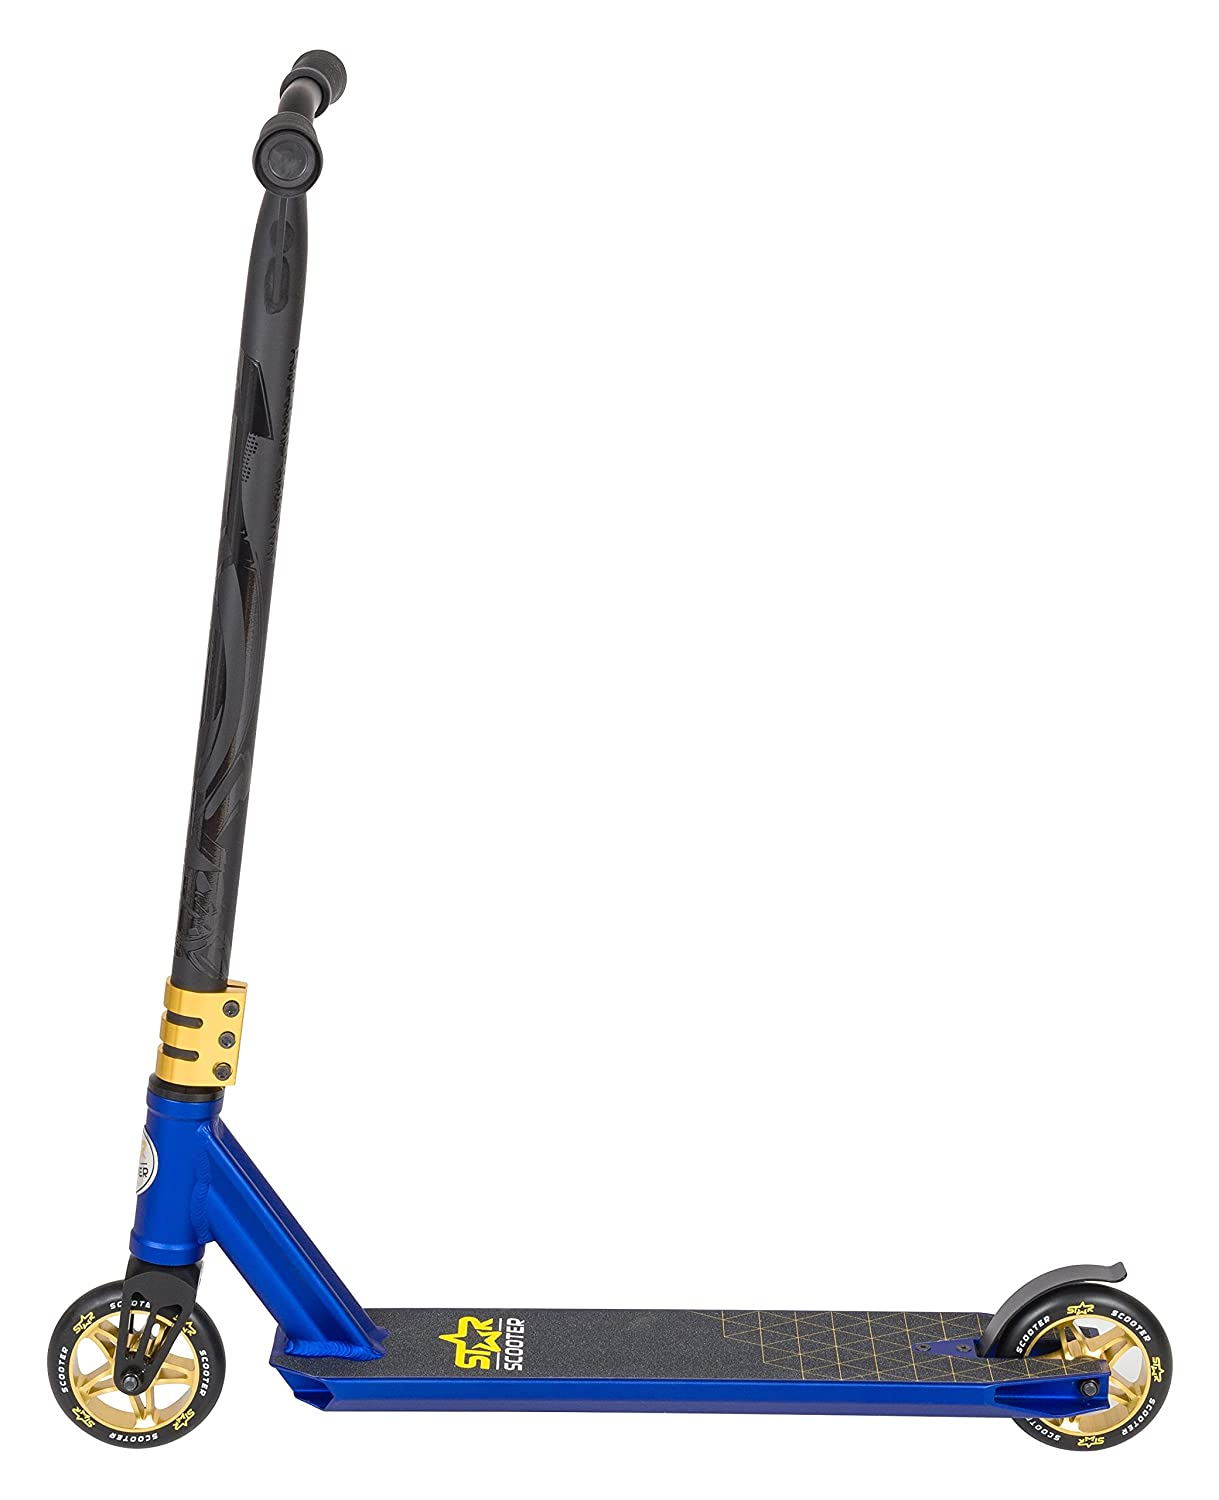 STAR-SCOOTER® Original Pro Sport Complete Leight Weight Stunt Scooter for Adults, Teenager and for Kids over 7 years | For Beginners up to Advanced ...